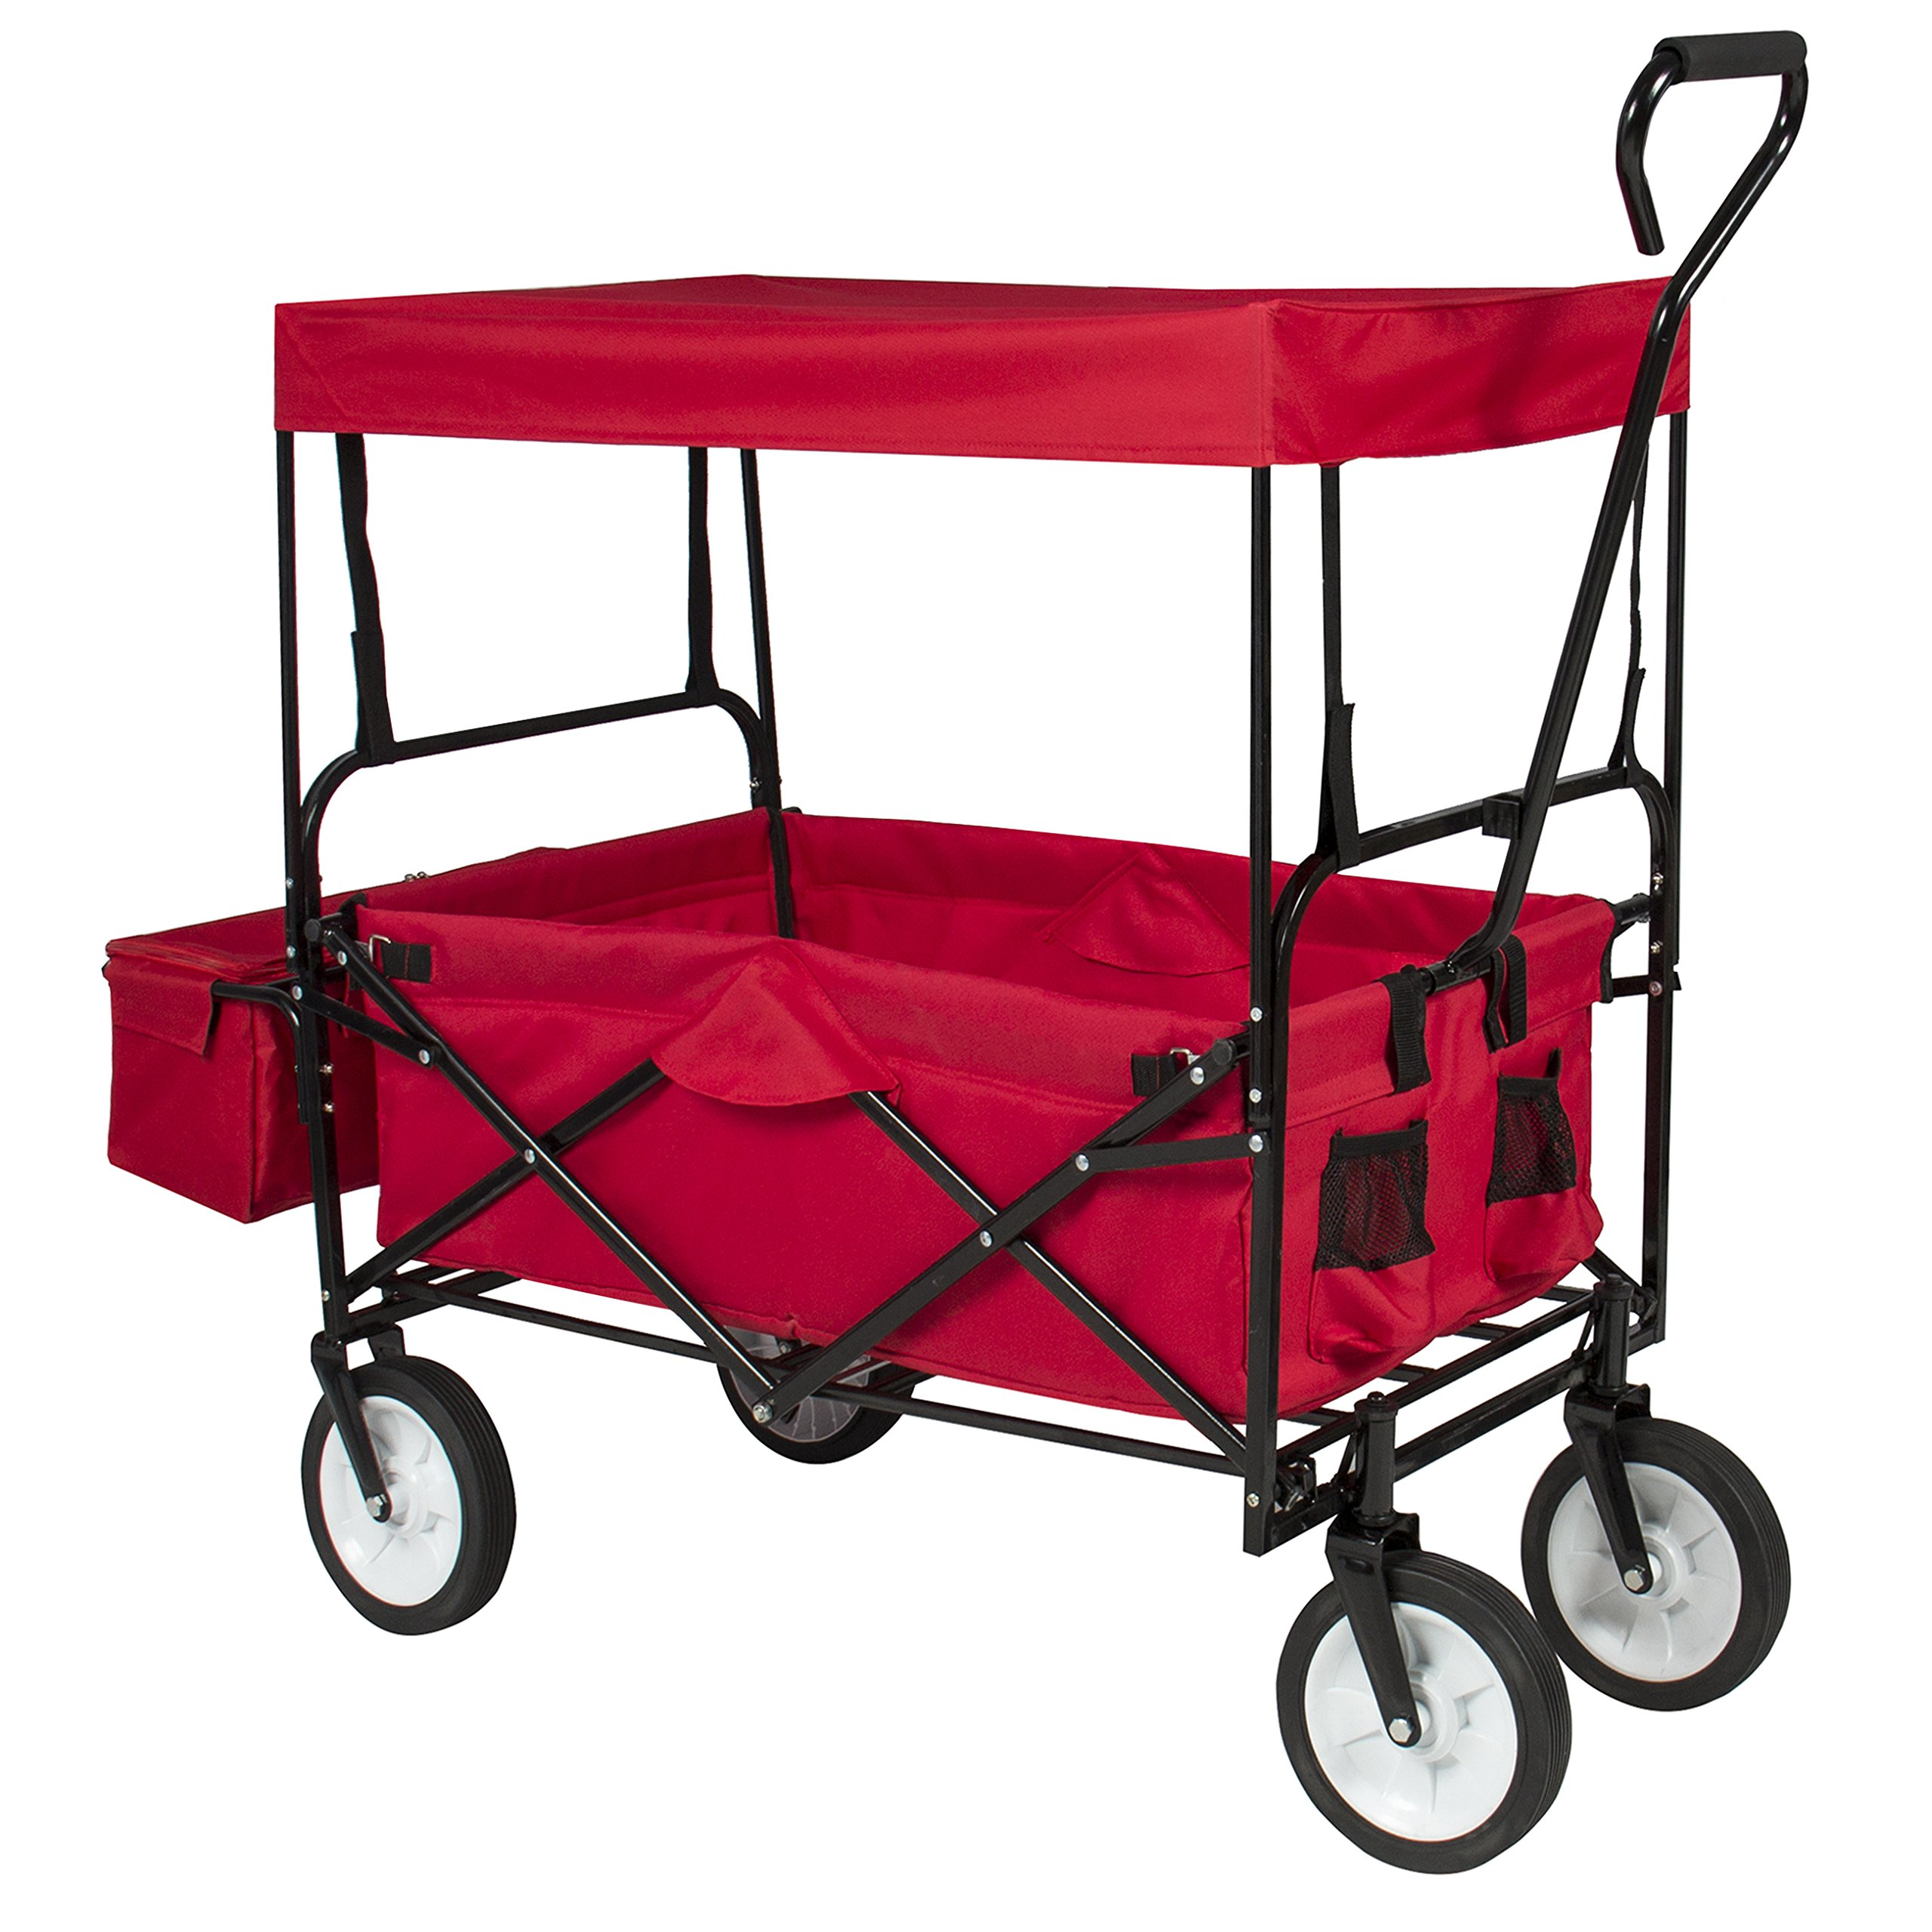 Best Choice Products Folding Utility Cargo Wagon Cart for Beach, Camping, Groceries w/ Removable Canopy, Cup Holders - Red by Best Choice Products